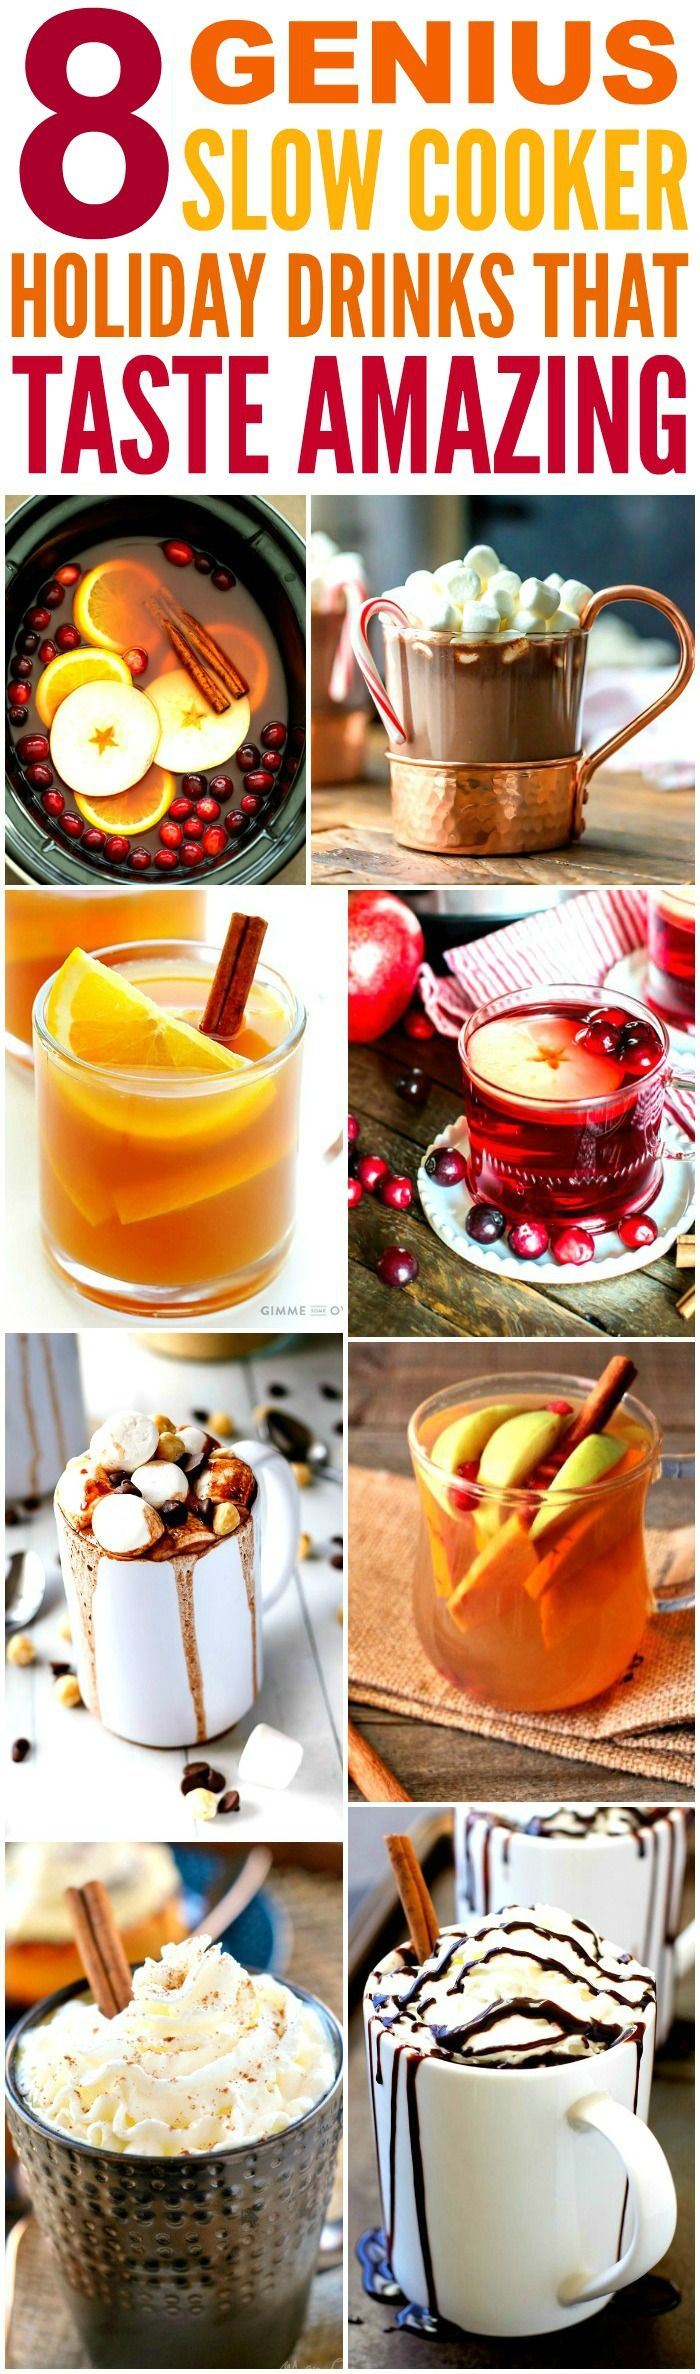 These 8 Genius Slow Cooker Holiday Drinks are THE BEST! I'm so glad I found these AWESOME recipe! Now I have some tasty drinks for the Christmas and New Years! Definitely pinning!